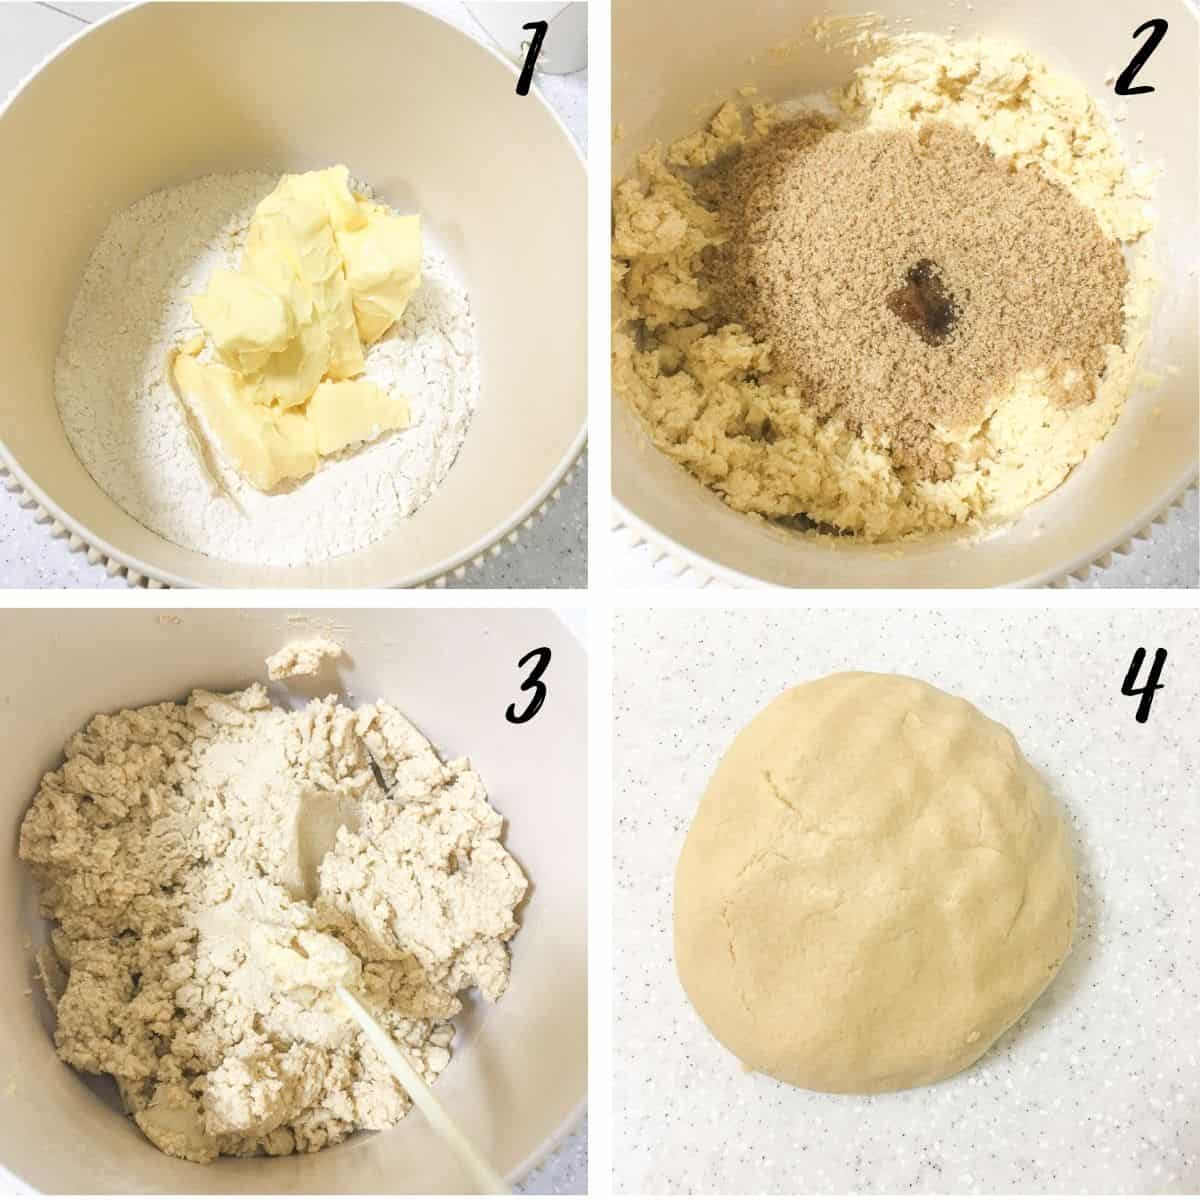 A poster of 4 images showing how to mix shortbread dough